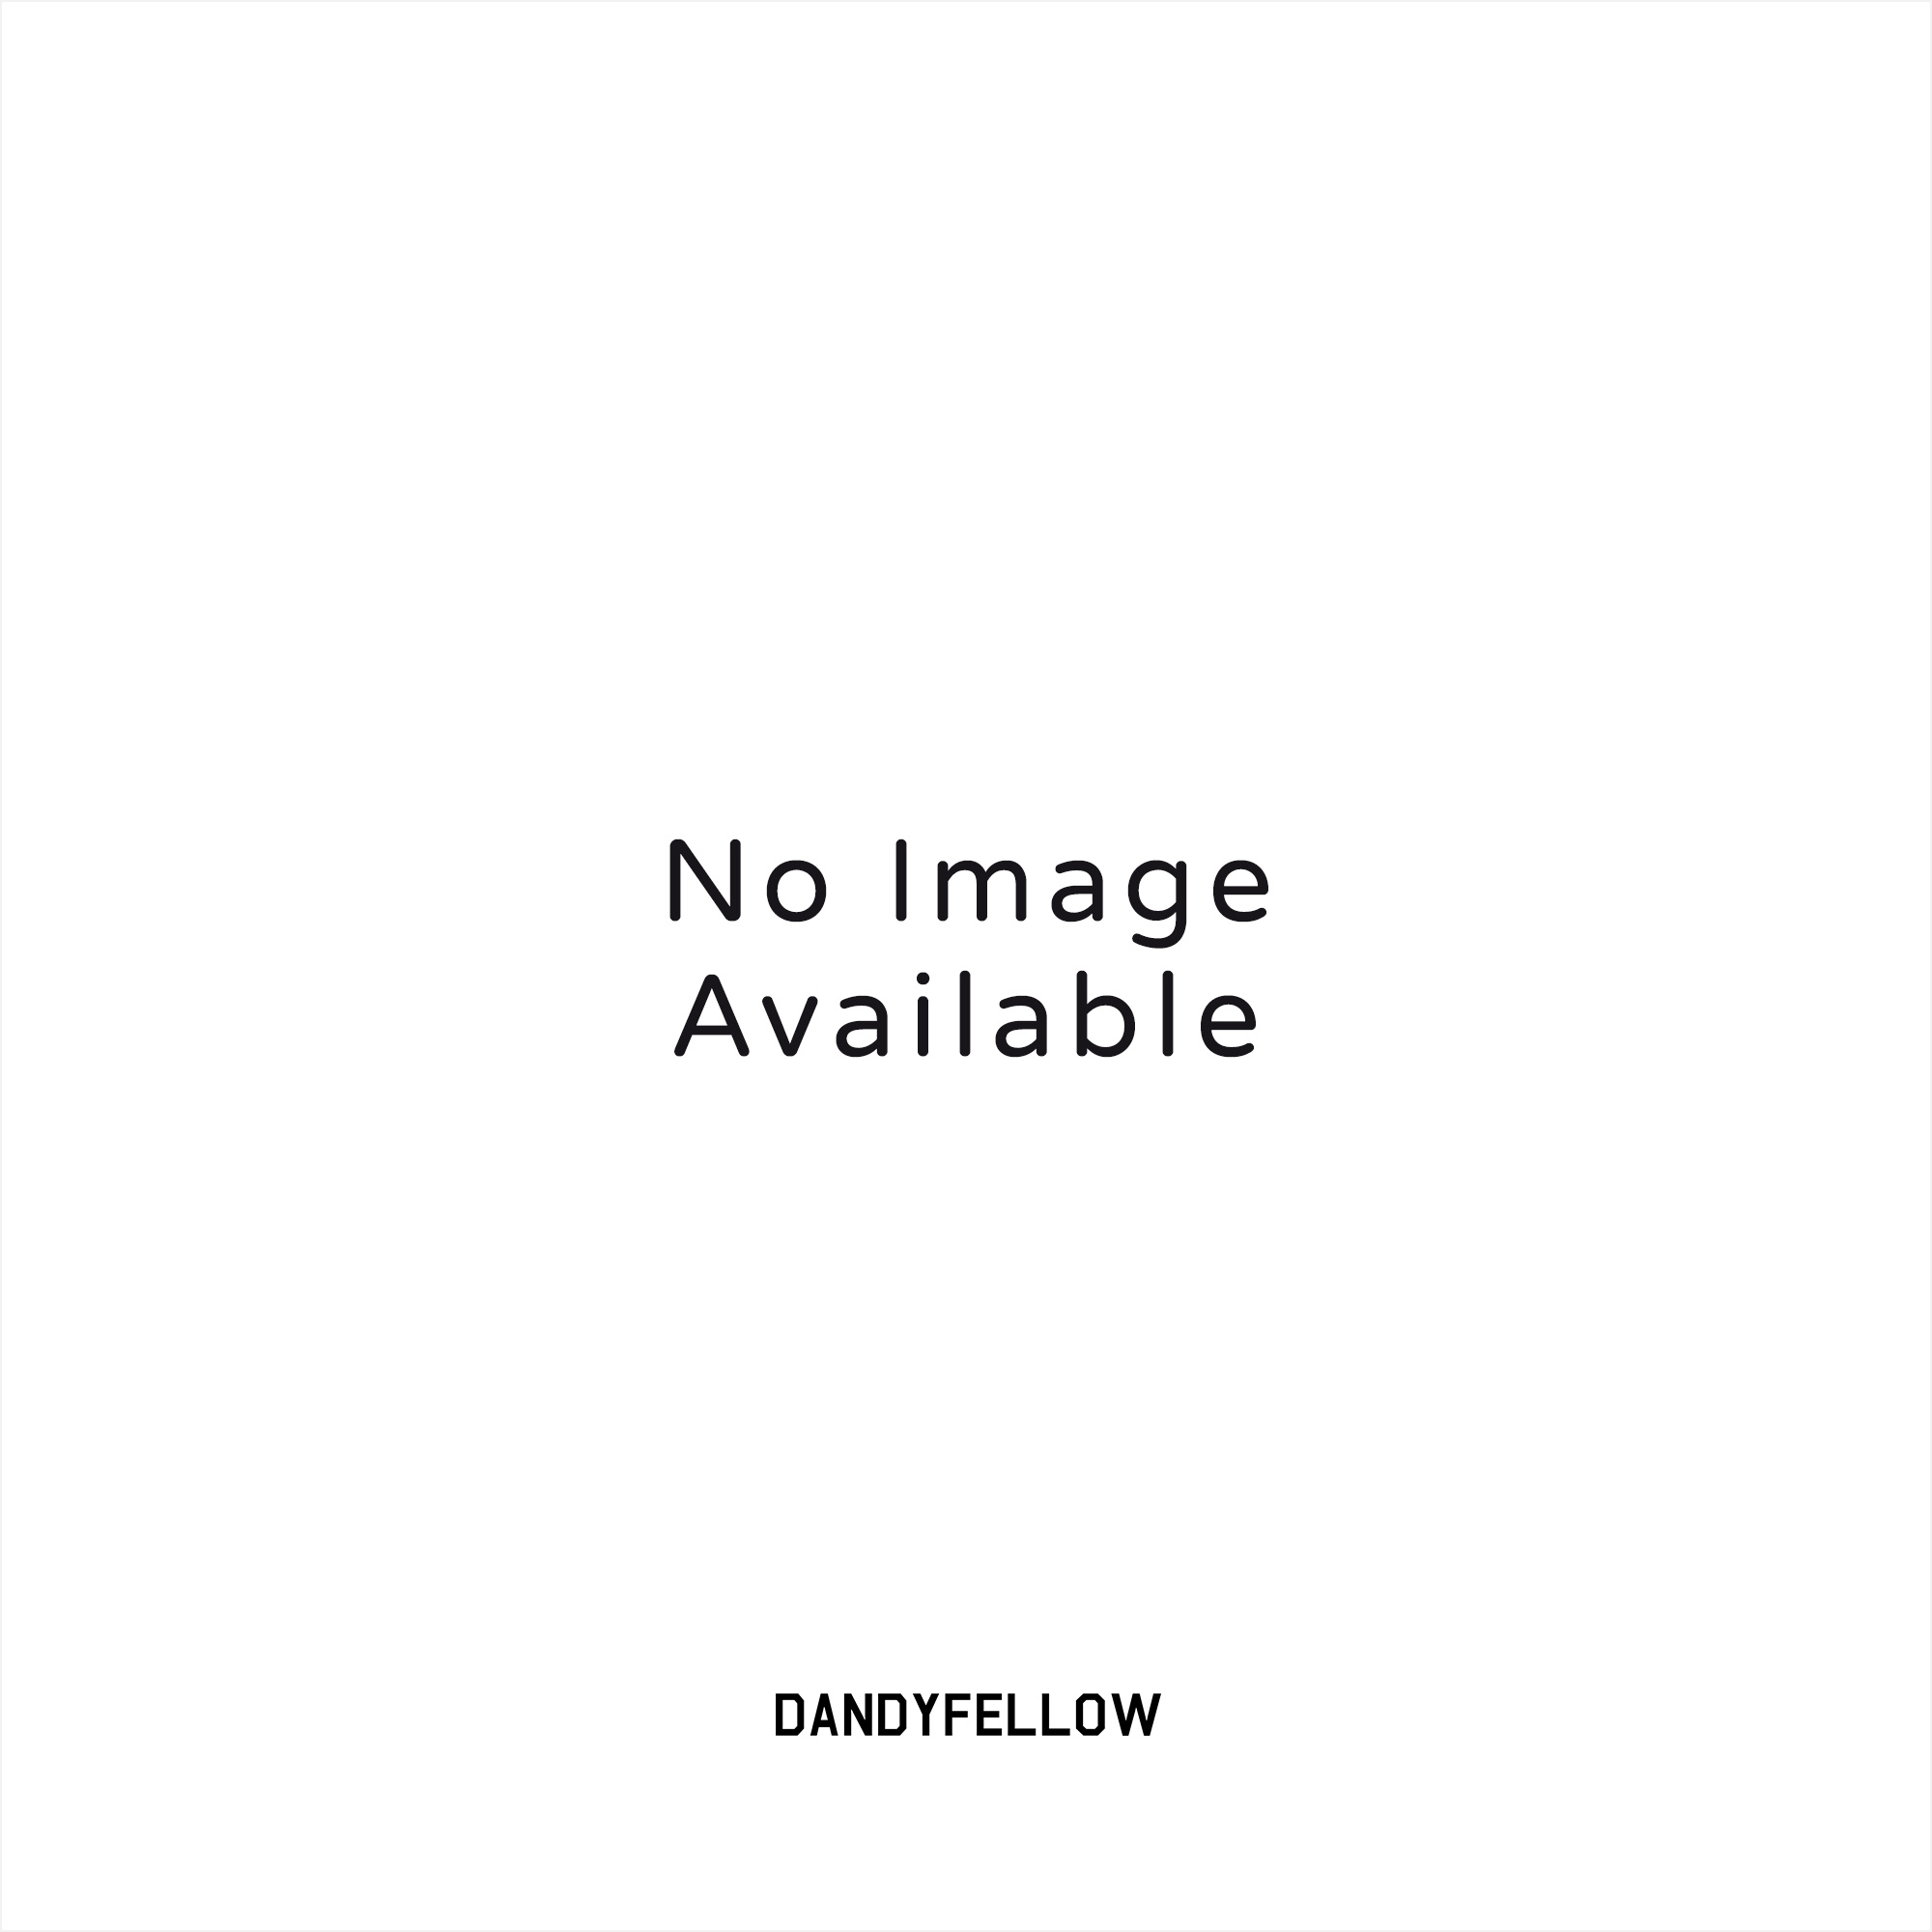 Paul Smith Classic White Shirt JPFJ-632P-D29